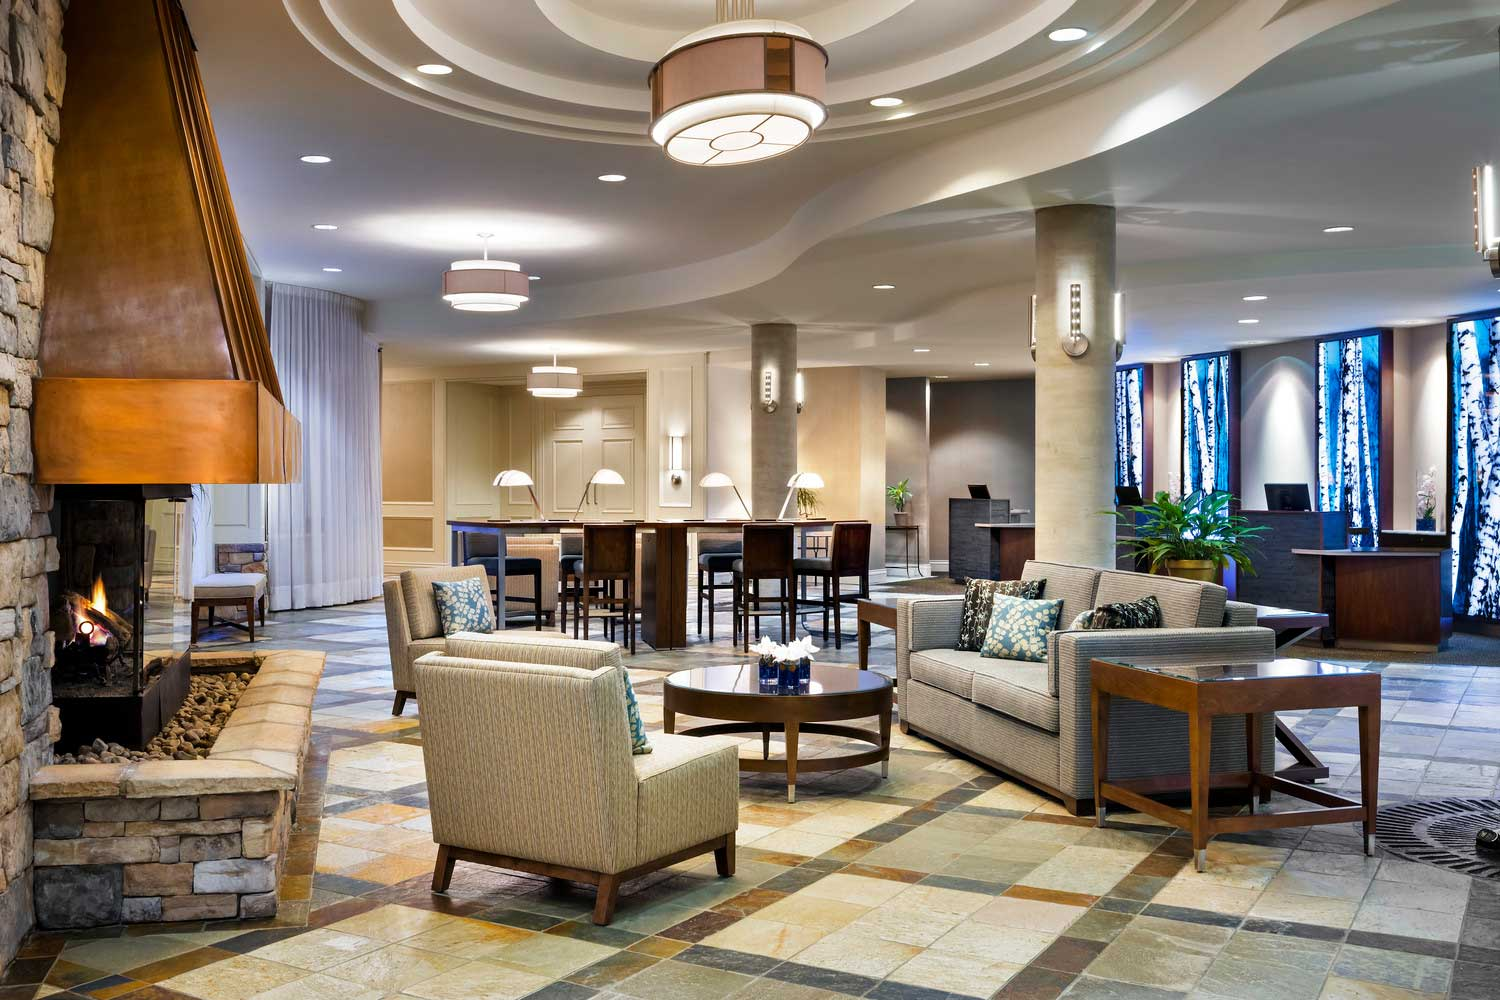 Westin Tremblant Quebec lobby and front desk